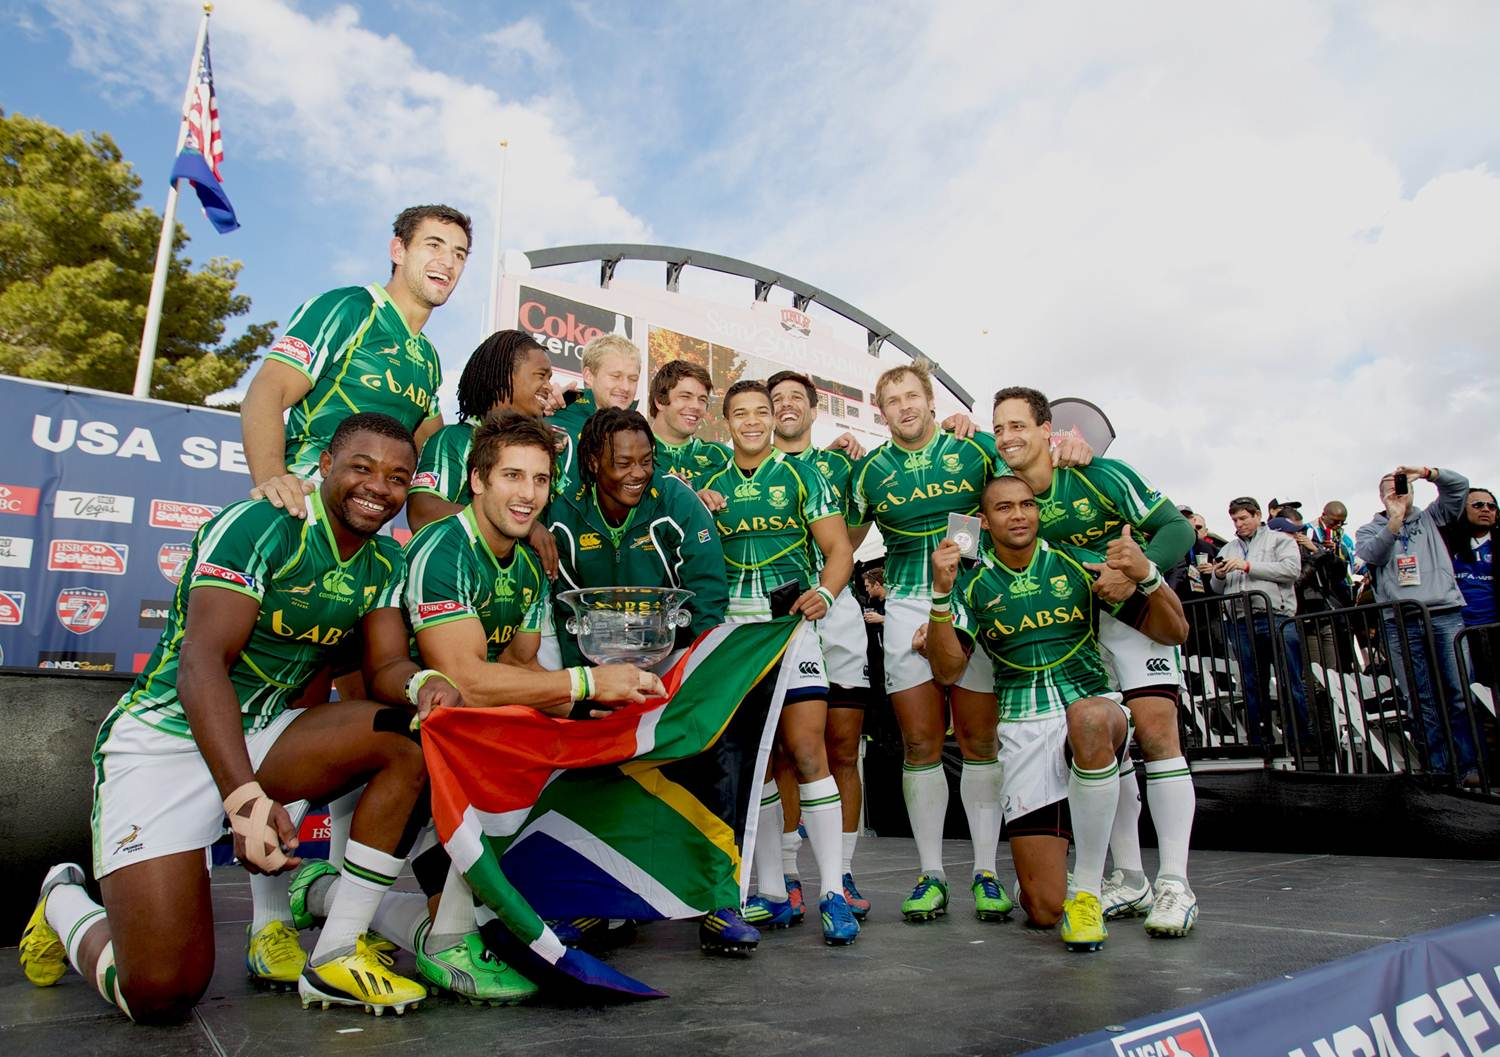 South Africa storm to USA Sevens Cup title